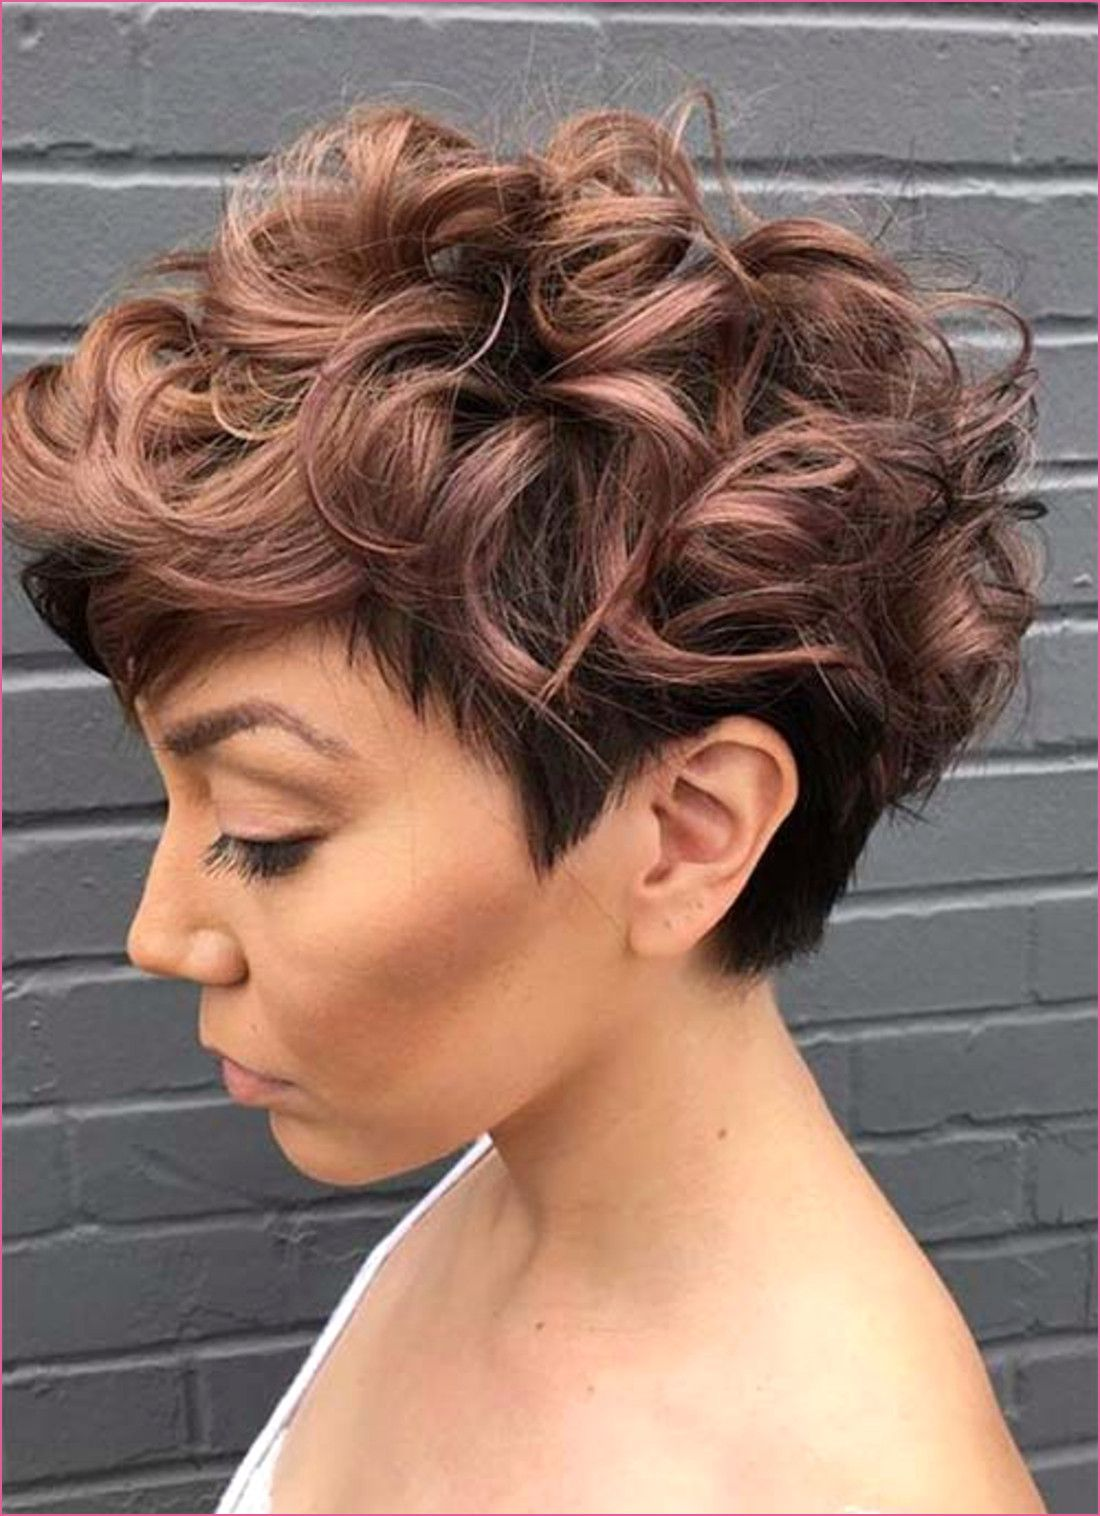 Frisuren Undercut Frauen Kurzhaarfrisur Locken Kurzhaarfrisuren Frauen Kurzhaarfrisuren Locken